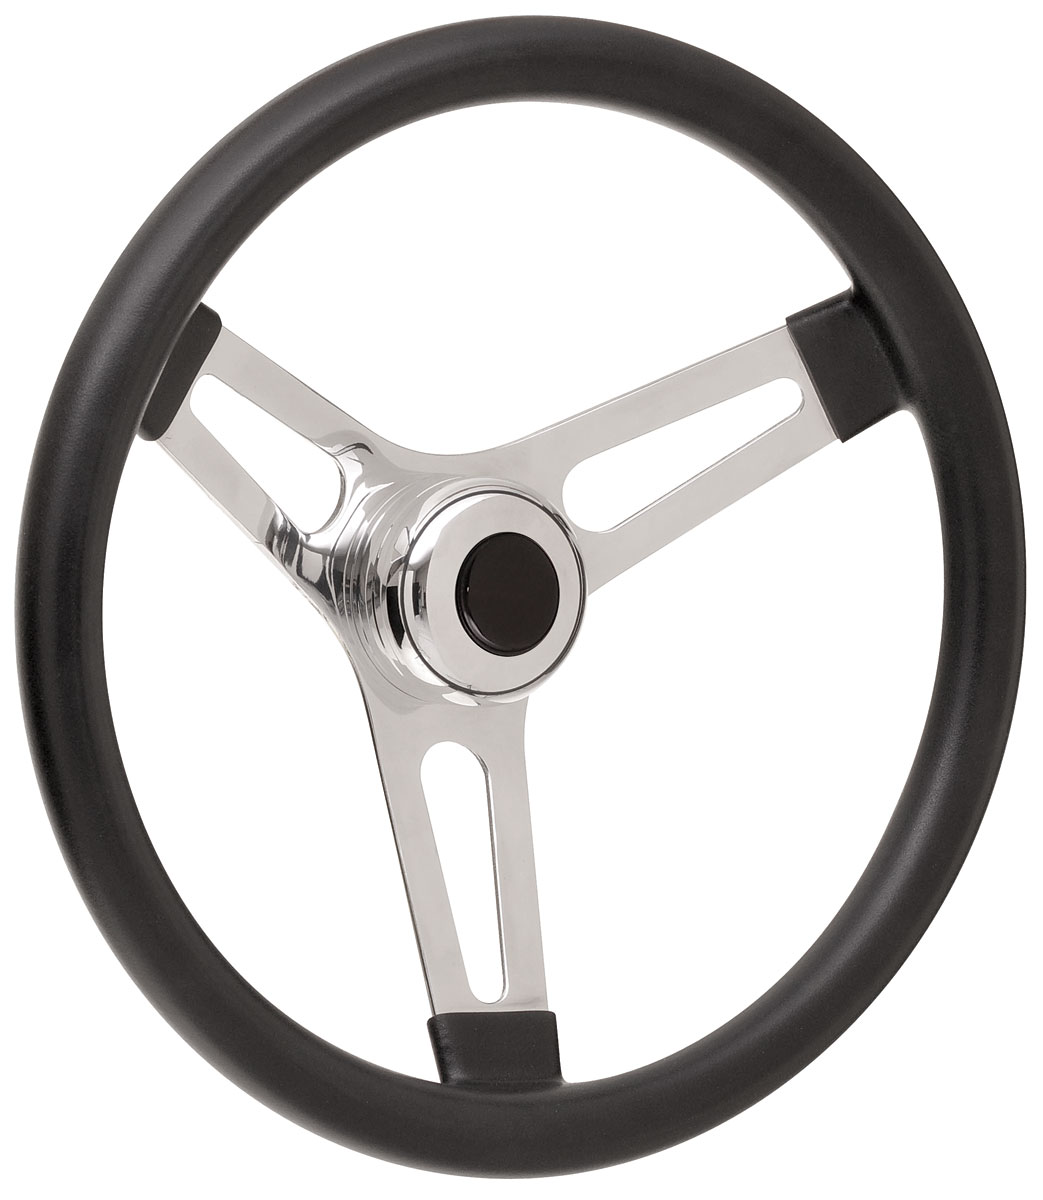 "Photo of Bonneville Steering Wheel Kits, Symmetrical Style Tall Cap - Polished Early 3-1/4"" dish with black center"